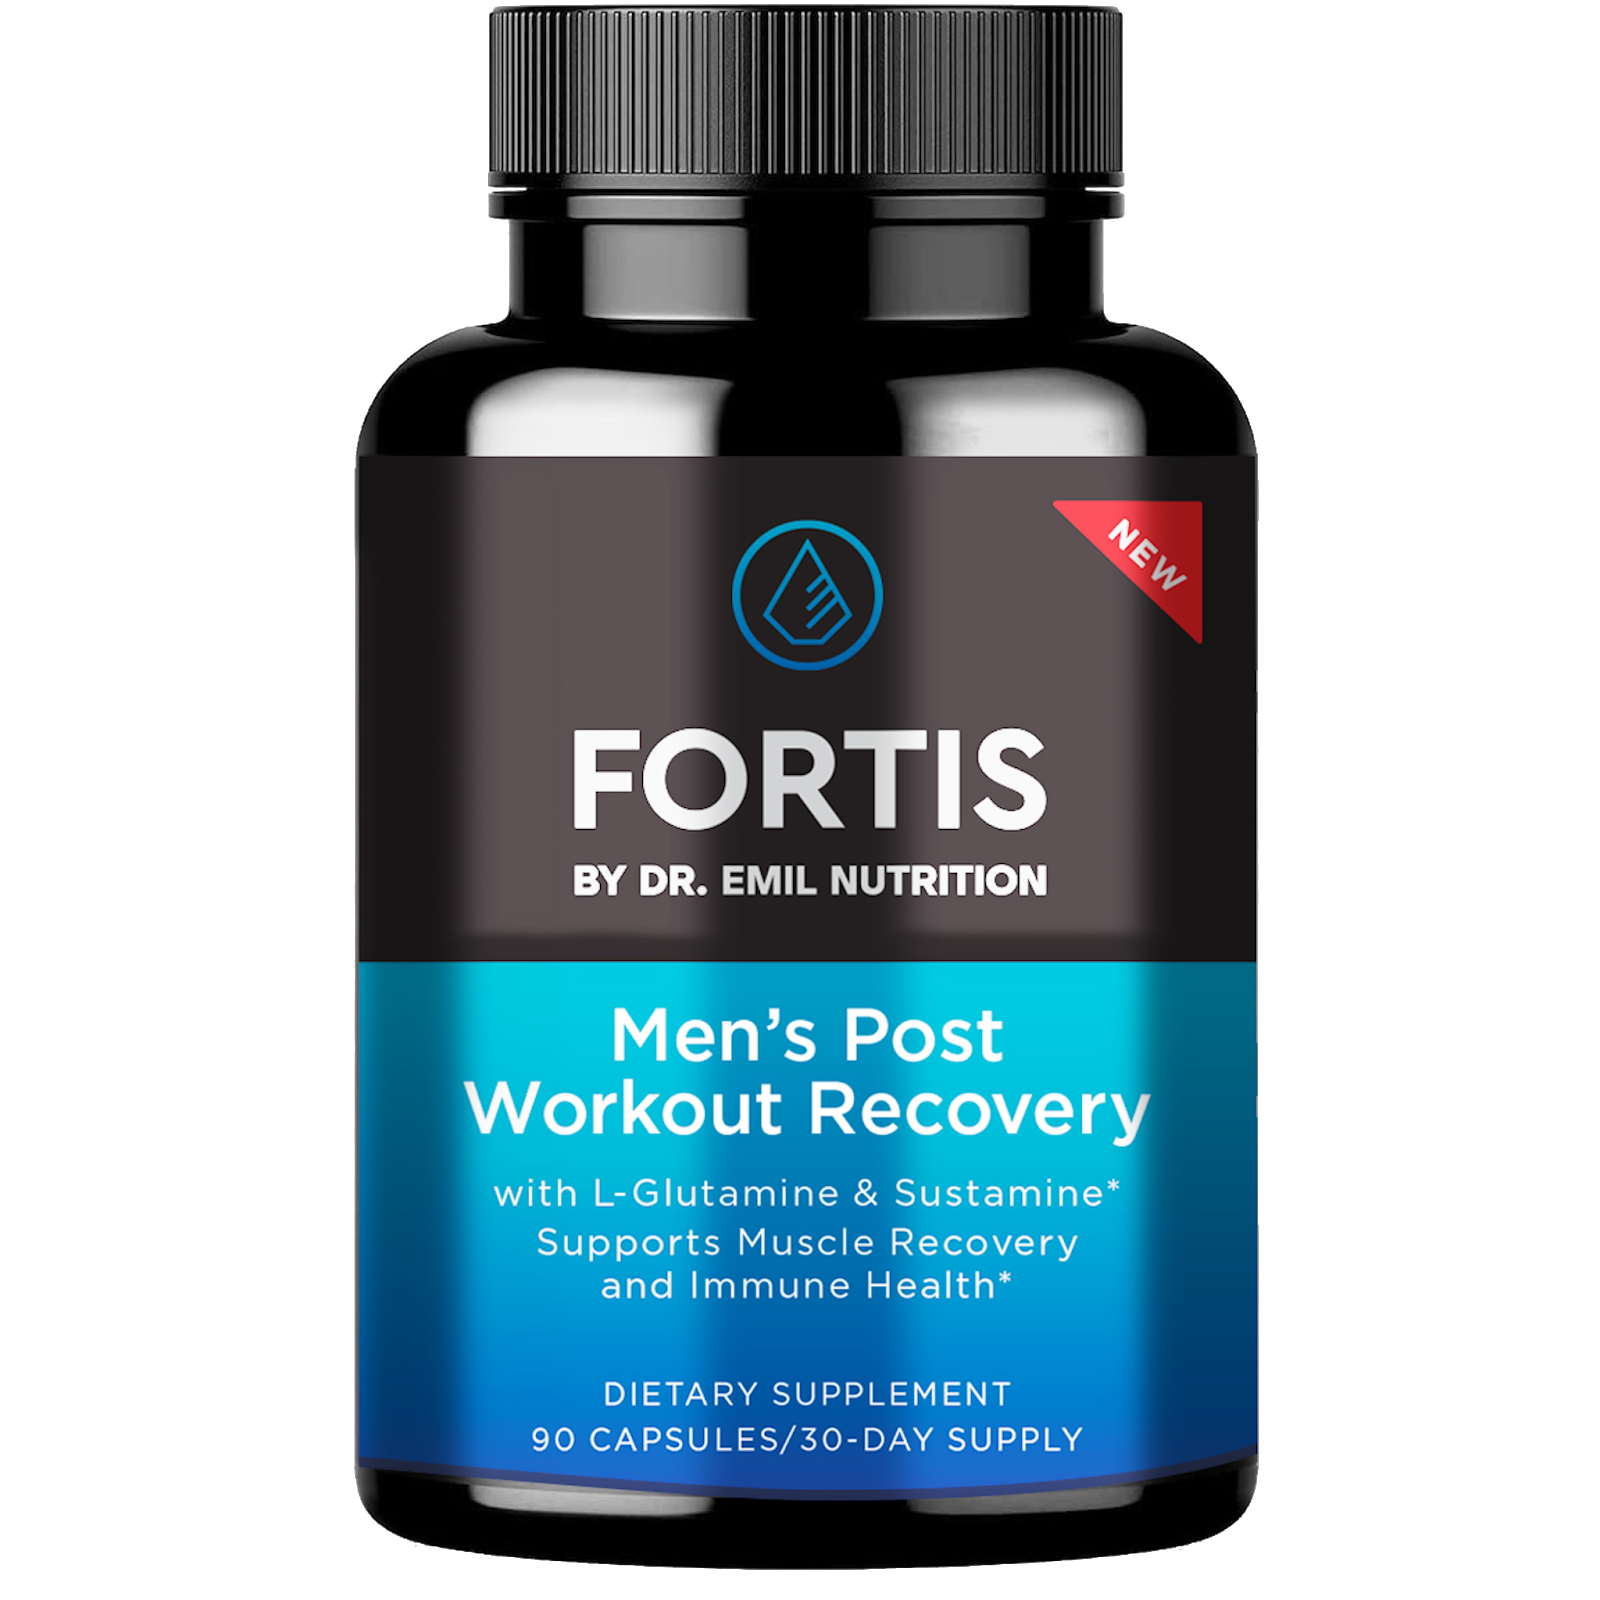 An image of Dr. Emil's post workout recovery supplement.